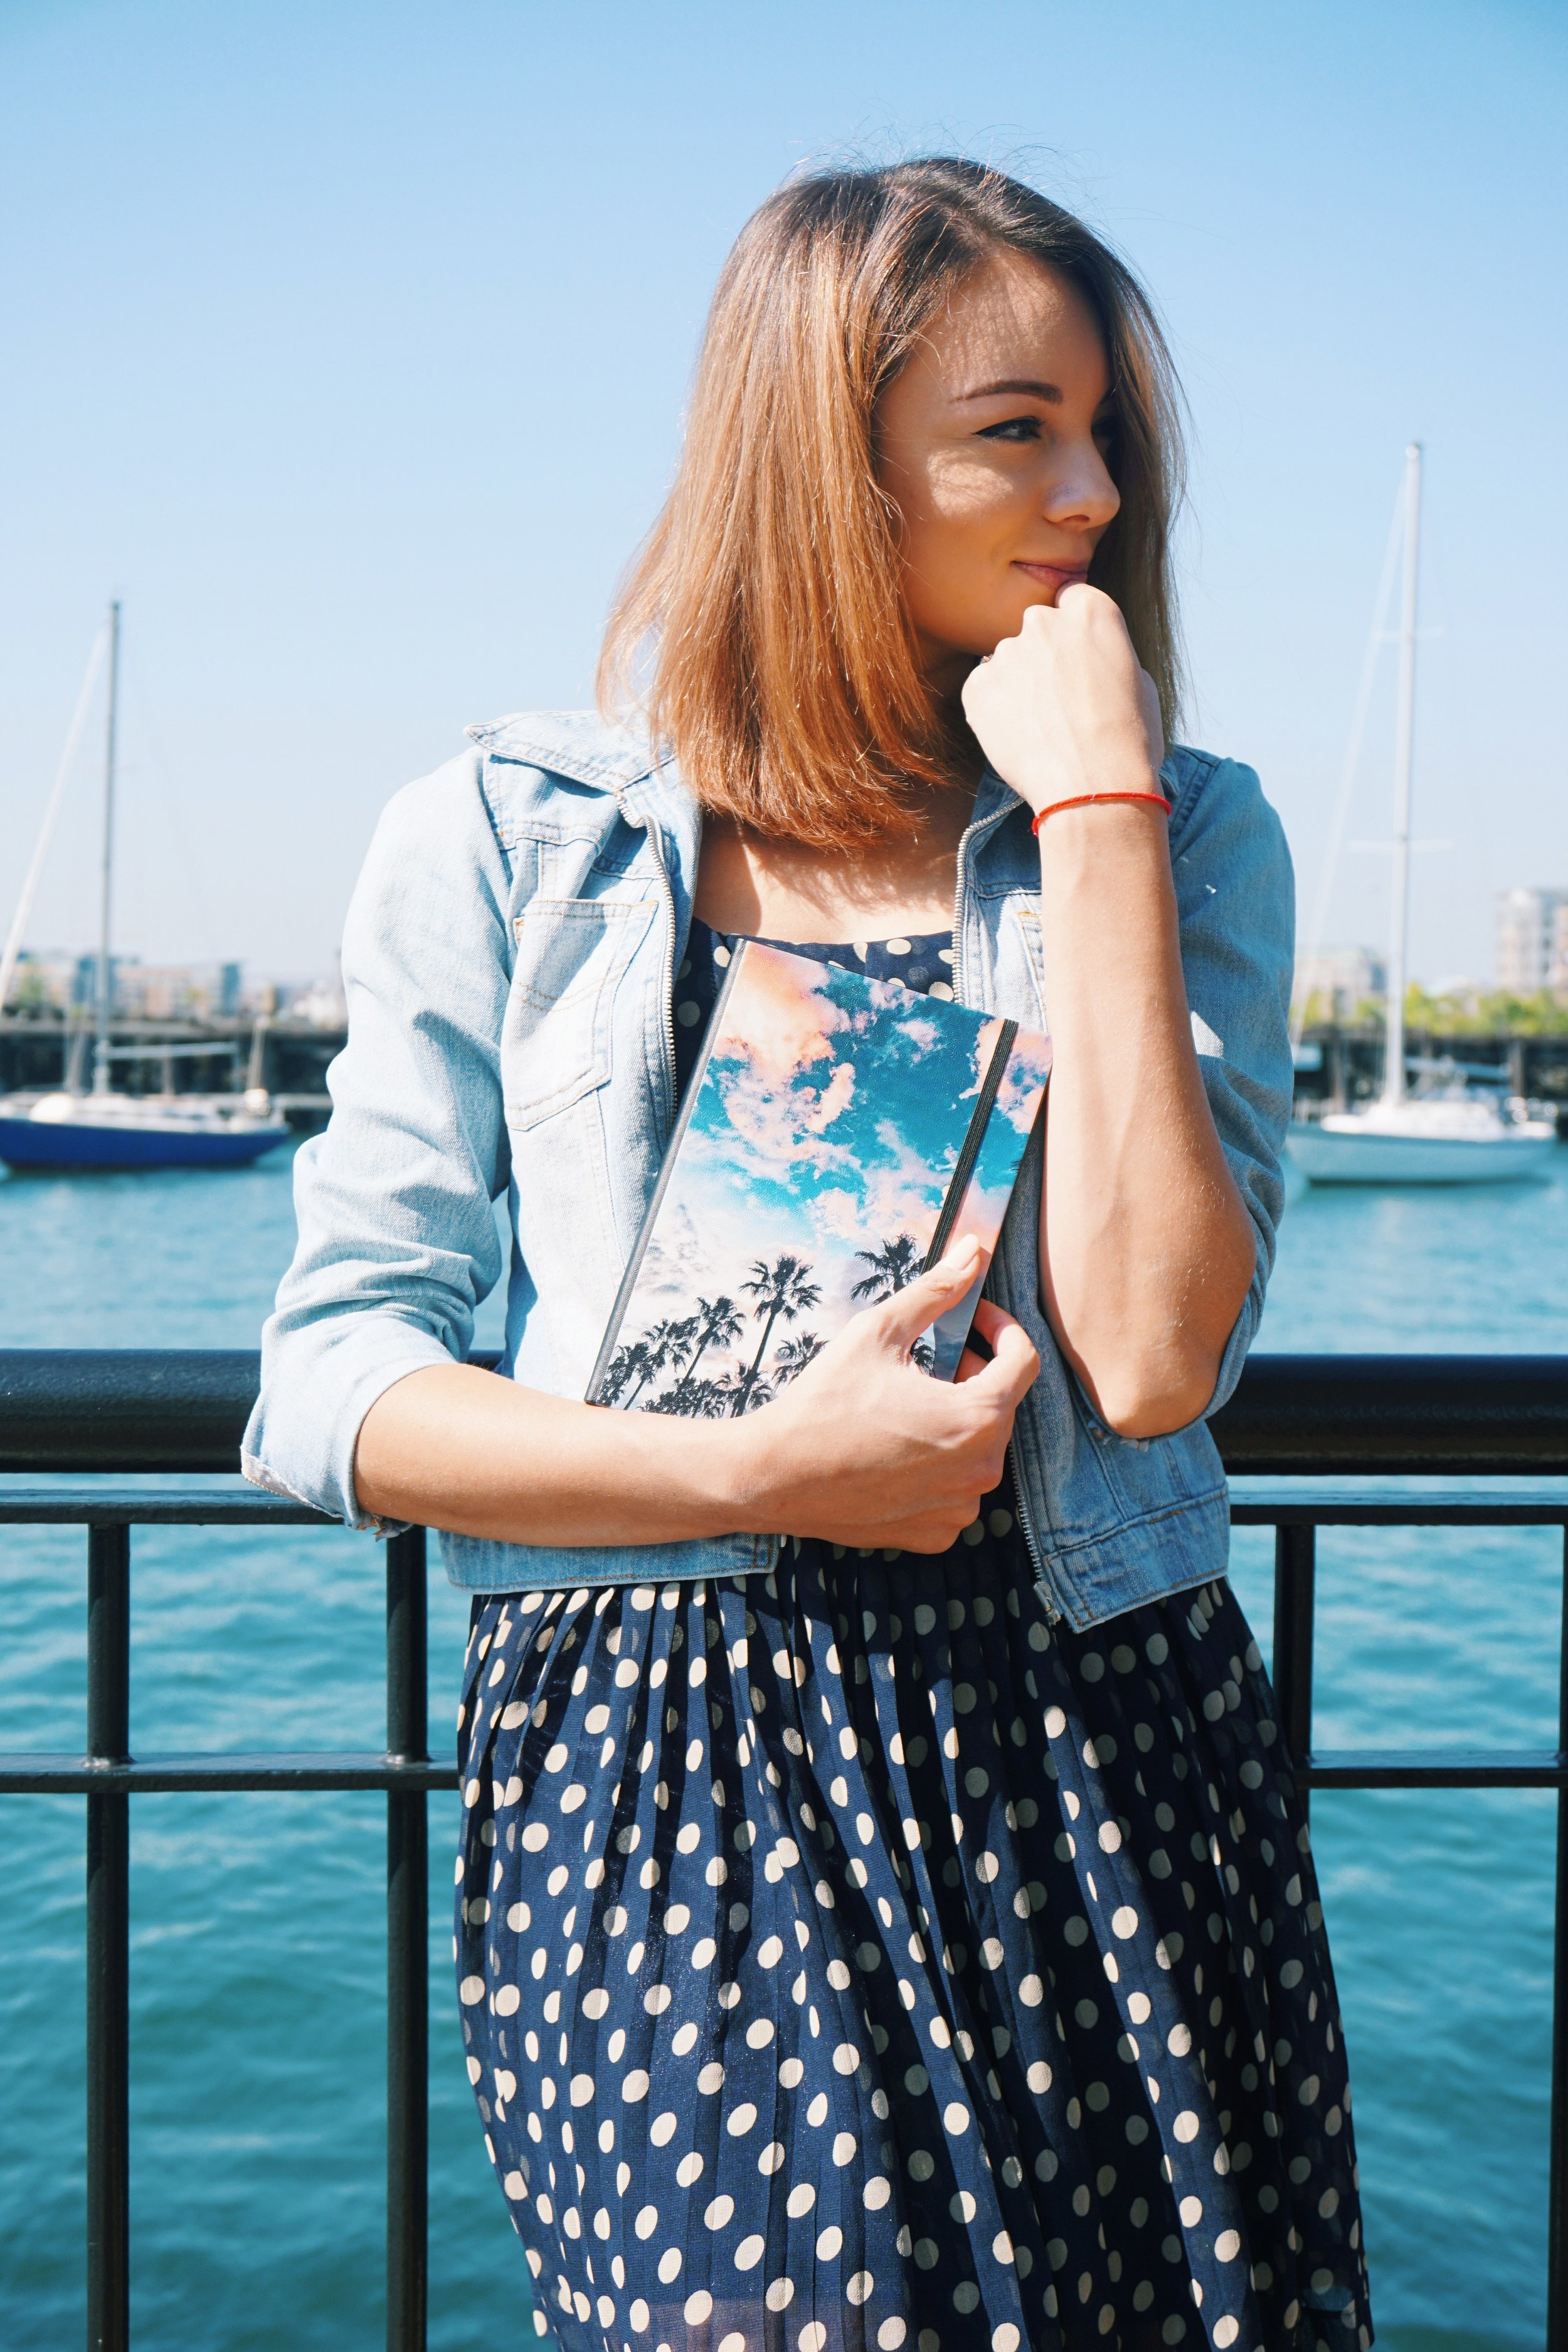 A blogger standing near the Boston pier, holding a customized design notebook, wearing a polka dot dress and a denim jacket.